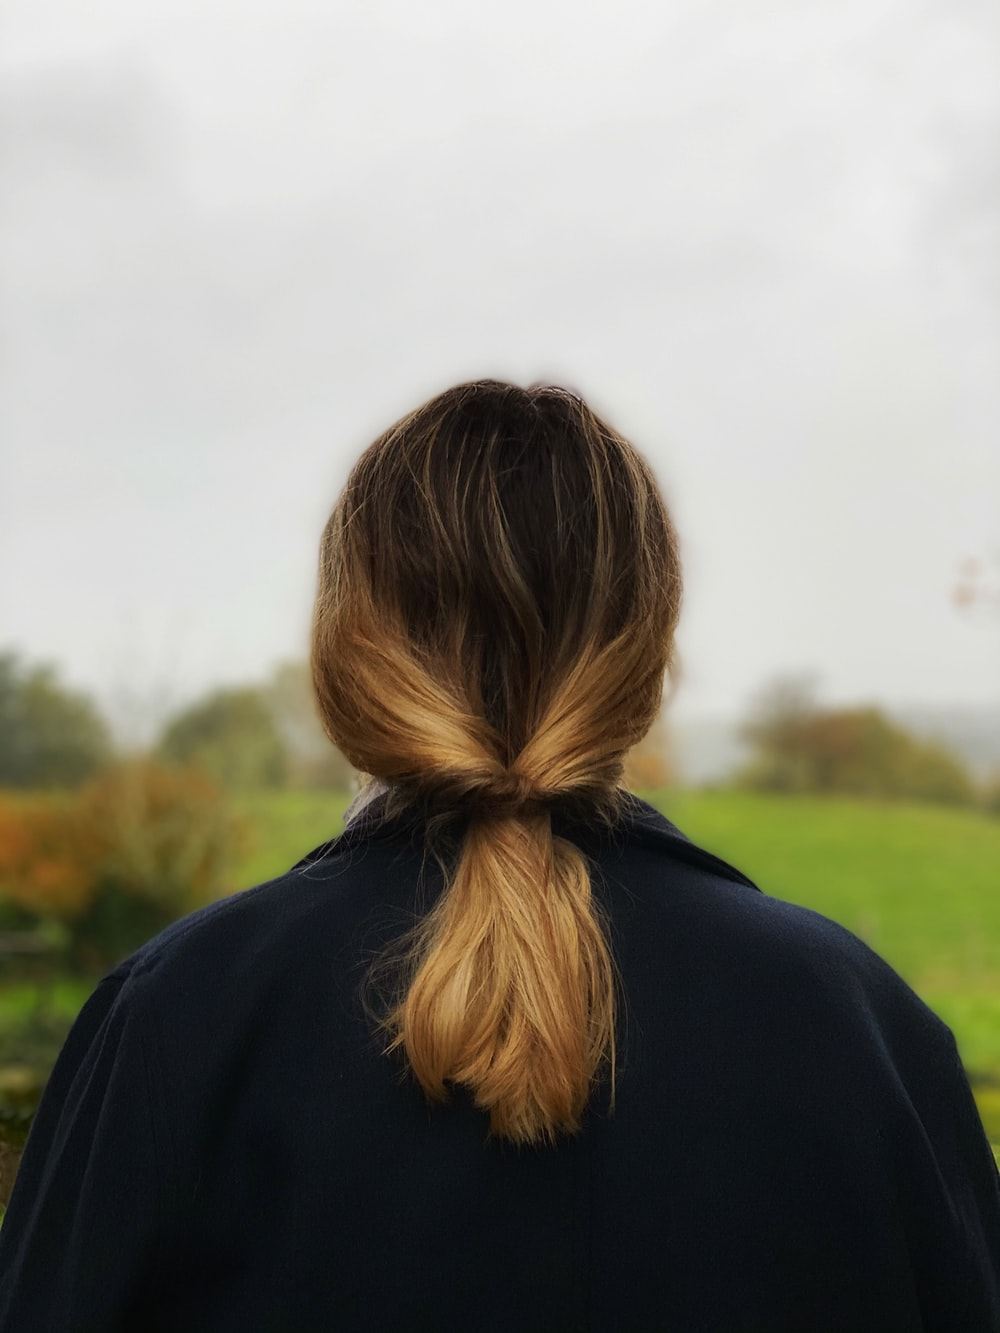 woman in black hoodie standing on green grass field during daytime